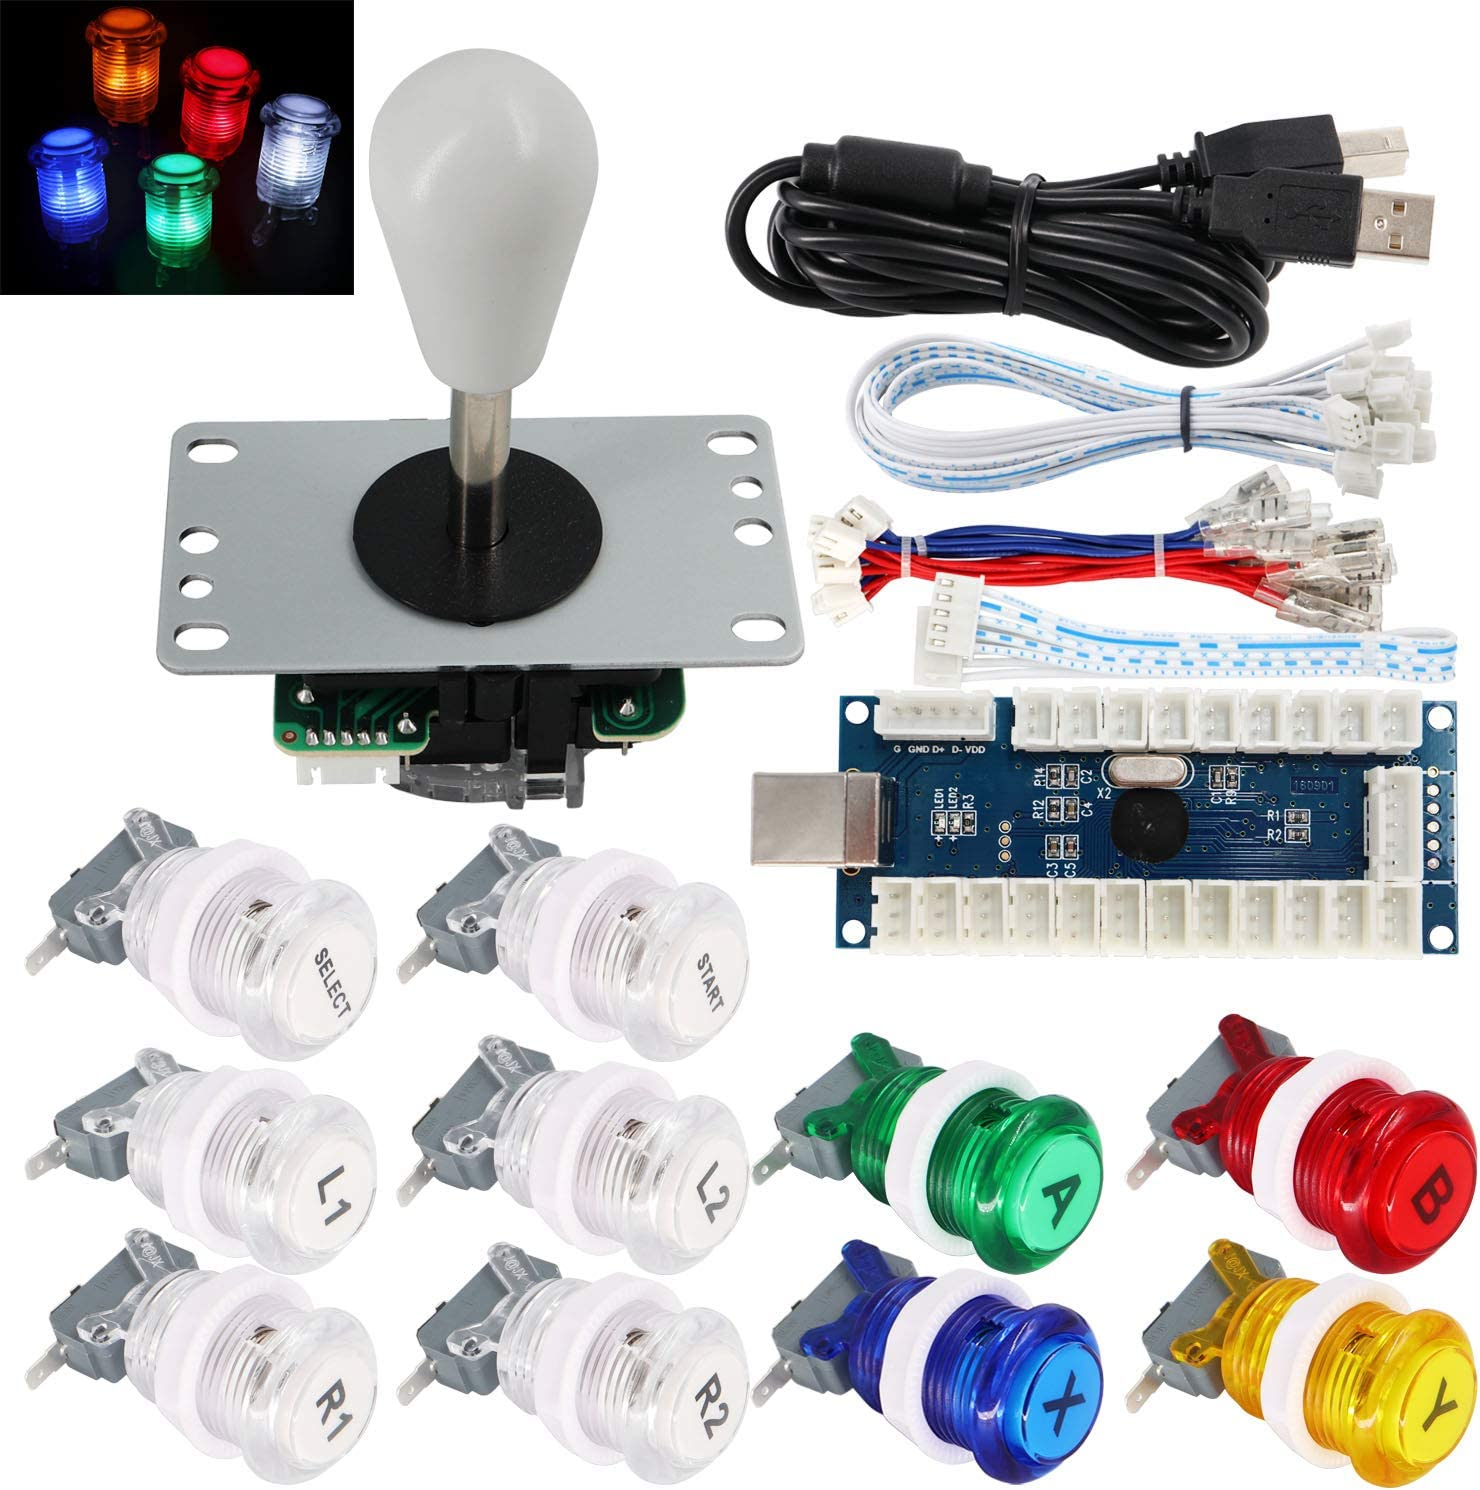 SJ@JX Arcade Game Stick DIY Kit Buttons with Logo LED 8 Way Joystick USB Encoder Cable Controller for PC MAME Raspberry Pi Color Mix